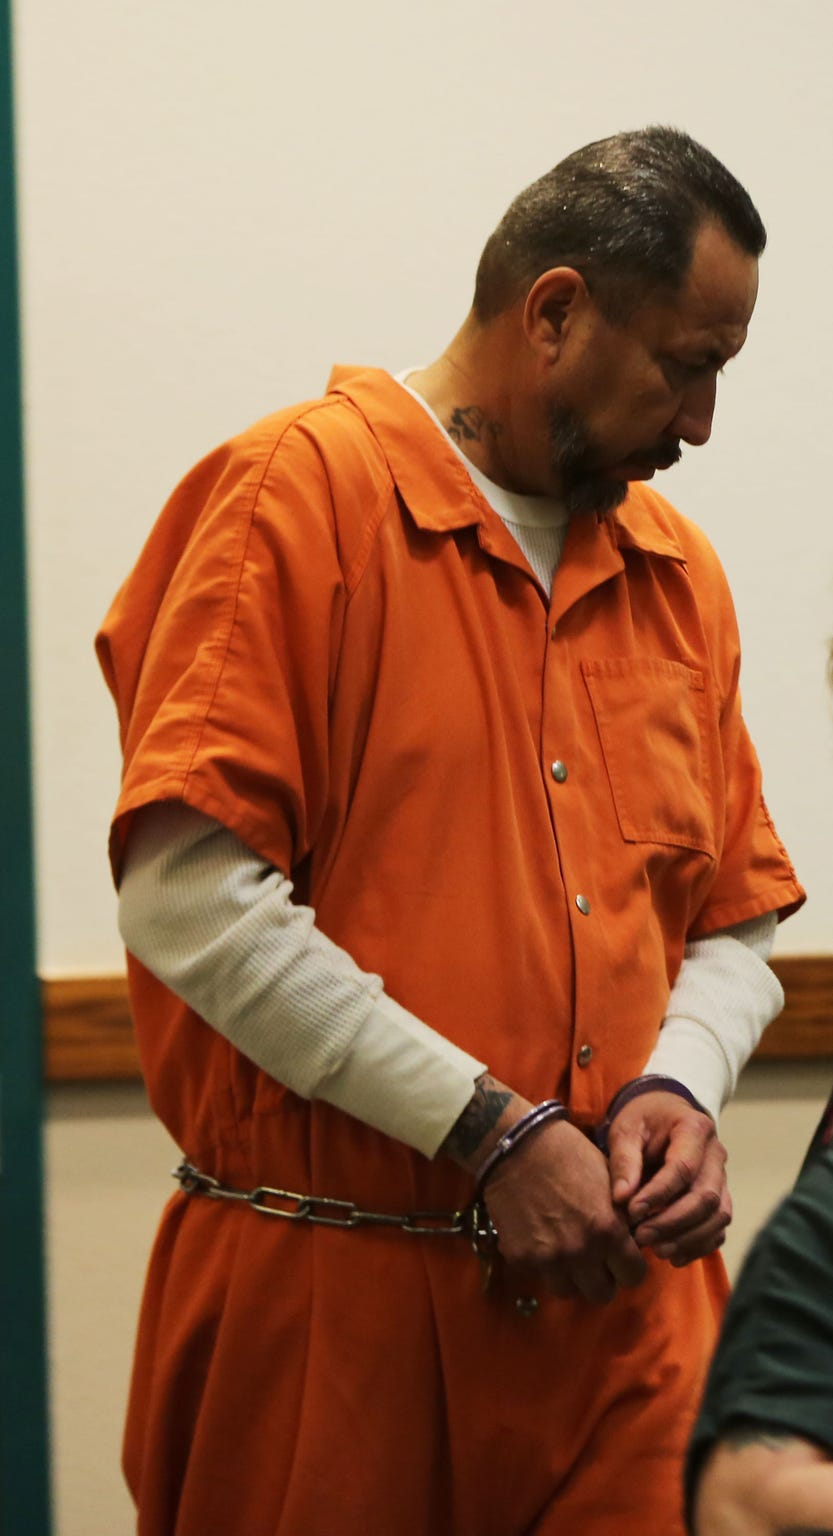 Las Cruces resident Gilbert Uranga, being led into courtroom six, for an arraignment on abuse charges, Monday May 20, 2019.